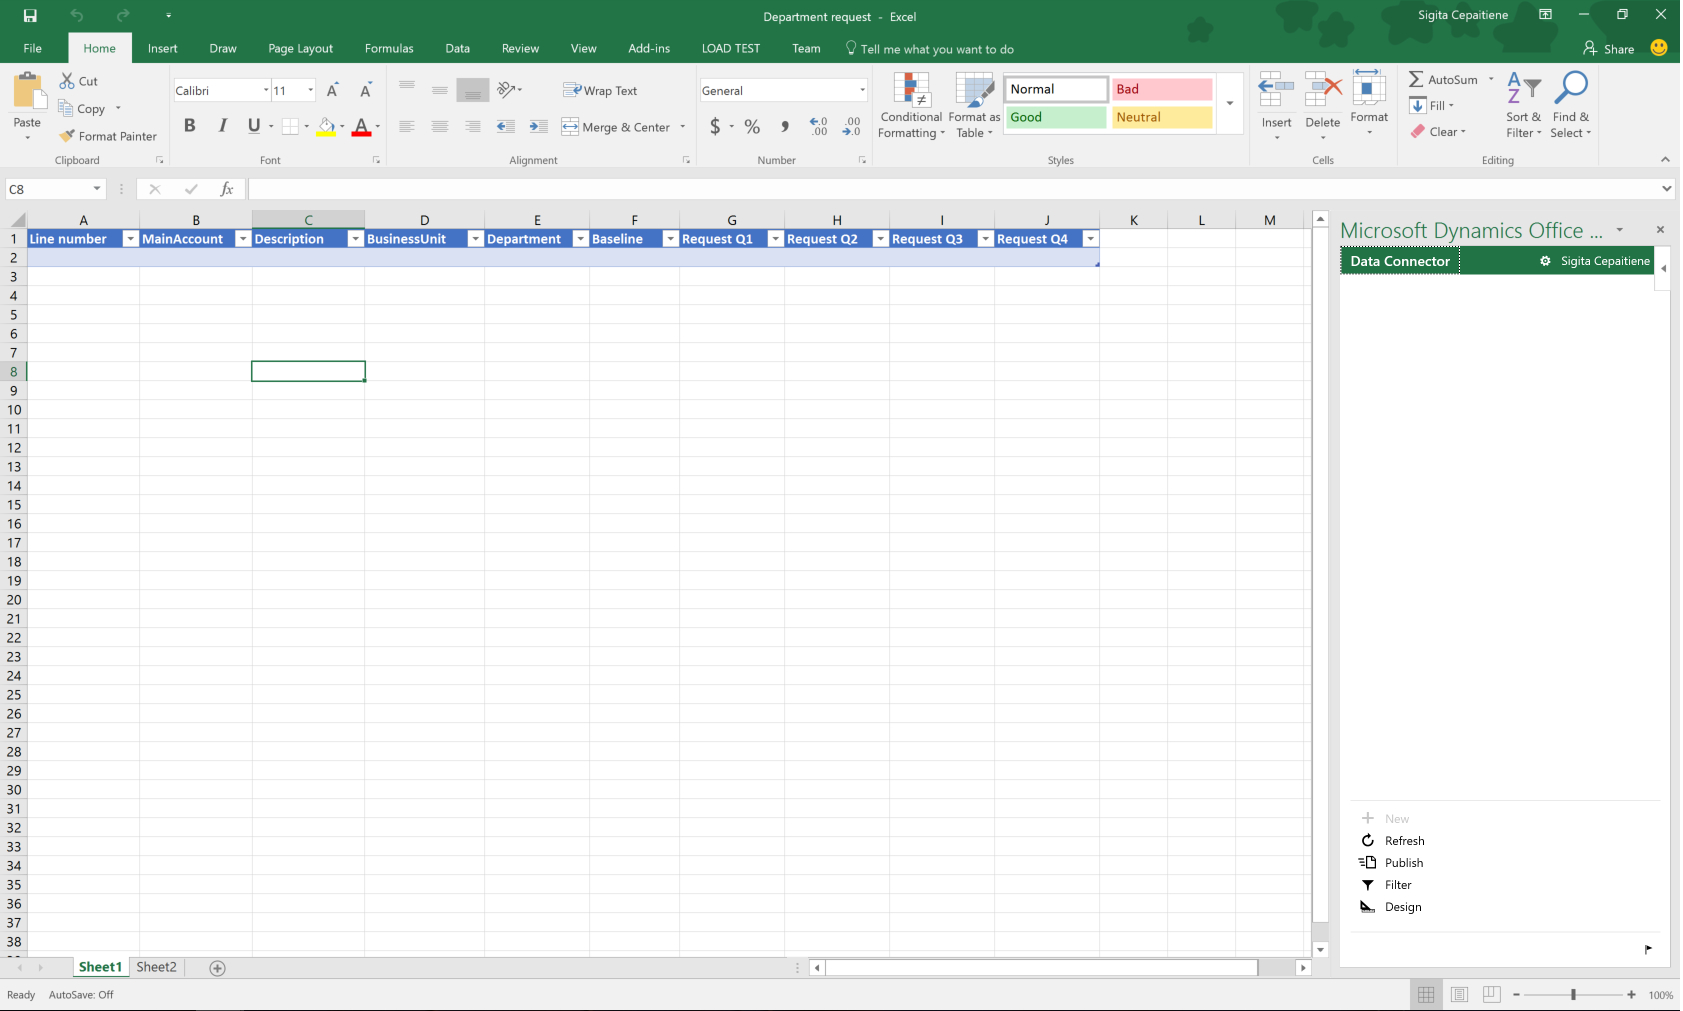 Budget Planning Templates For Excel   Finance & Operations To Asset Allocation Spreadsheet Template